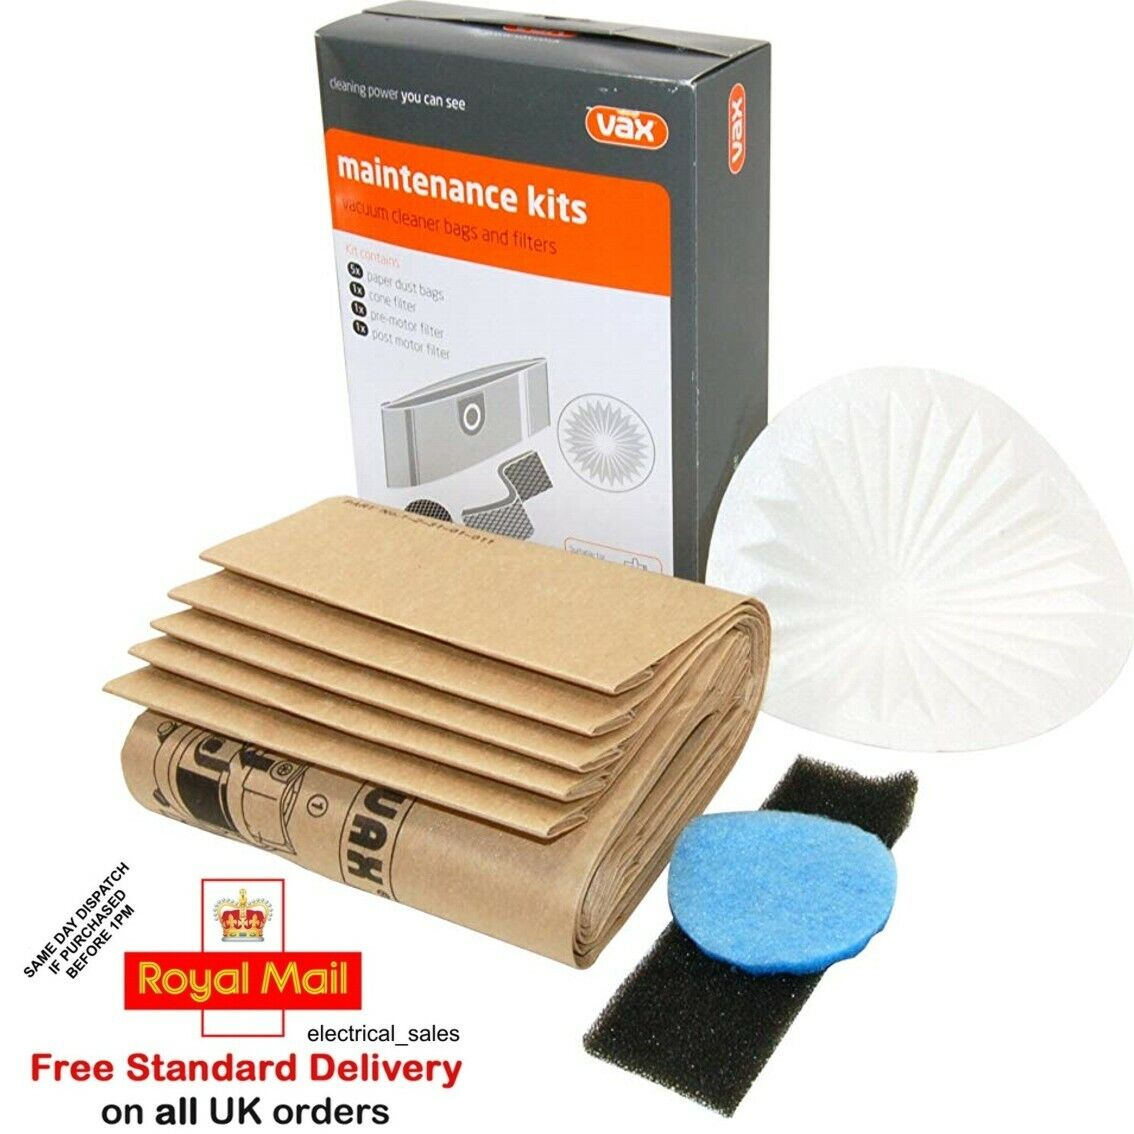 20 x Dust Bags for VAX Vacuum Cleaner Hoover 121 2000 4000 6000 7000 series